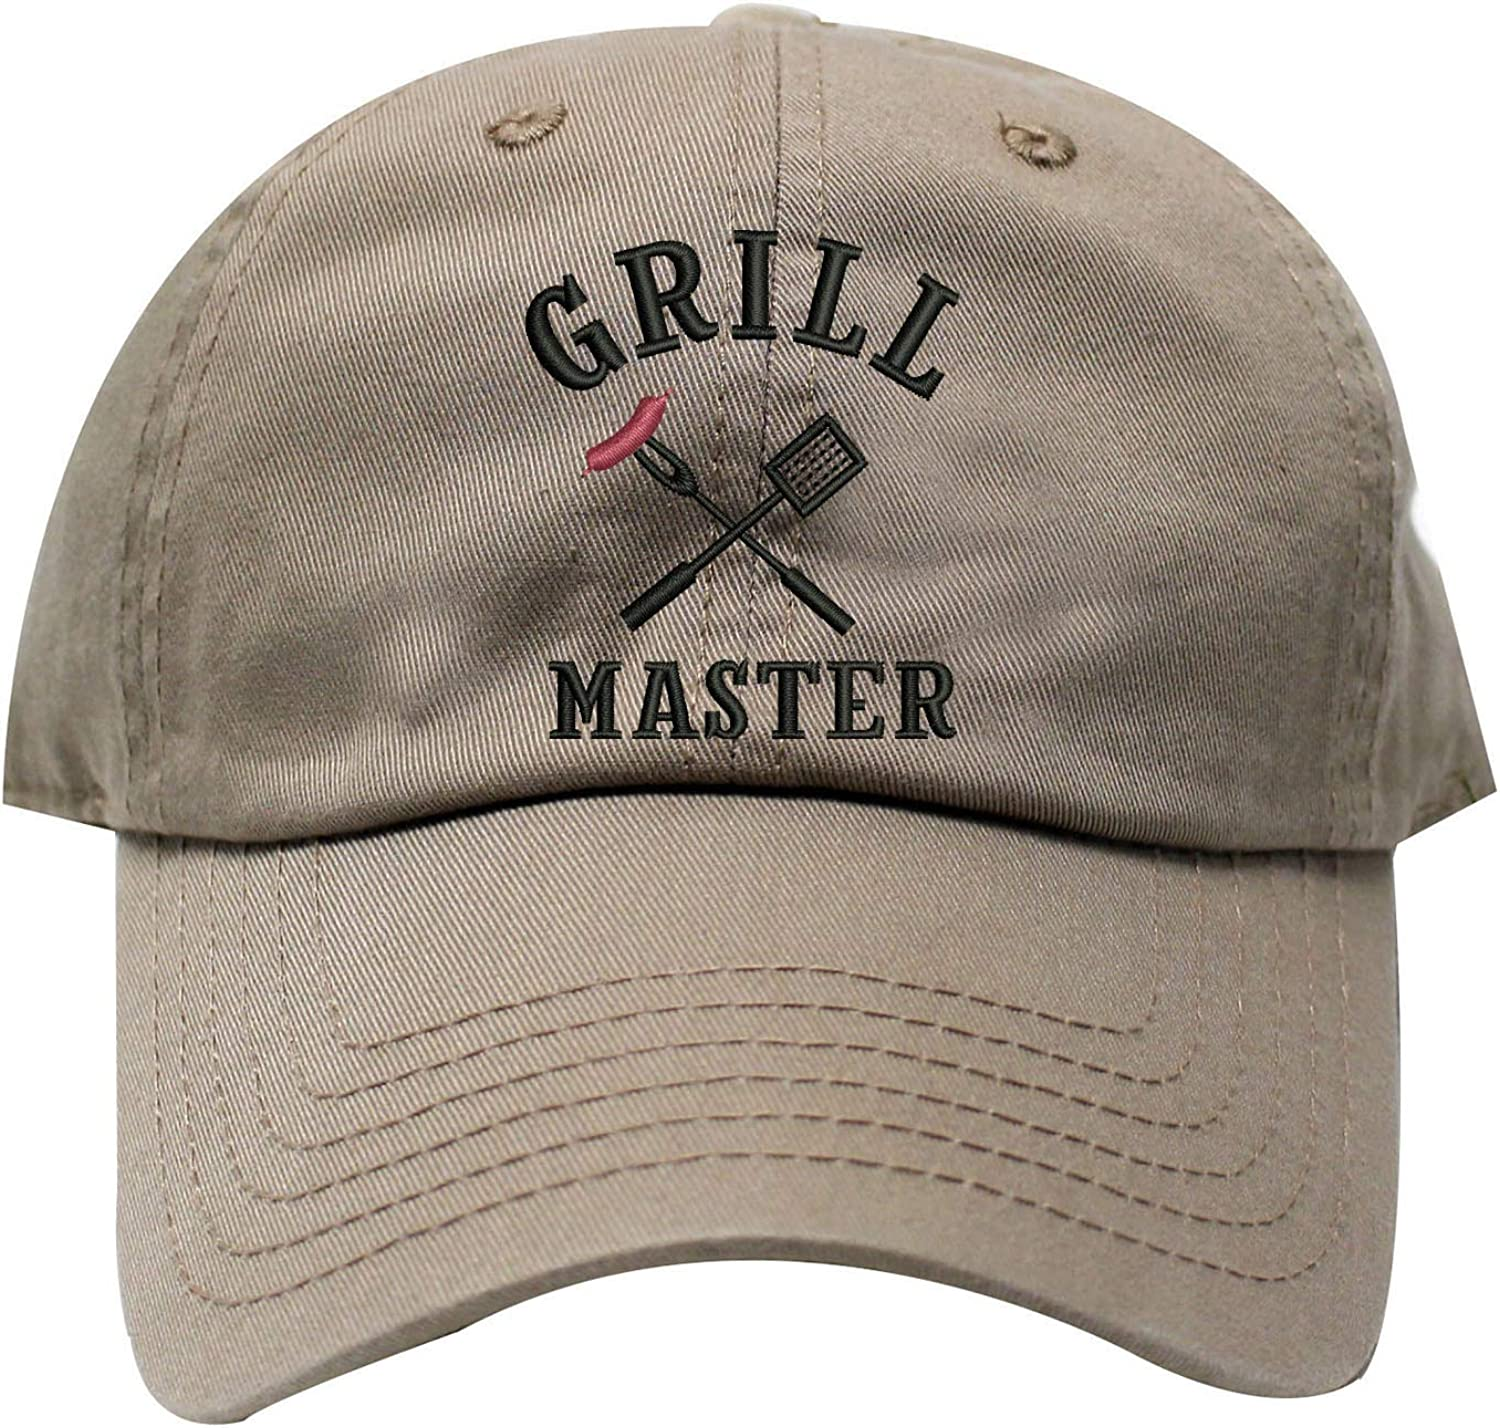 INK STITCH Grill Master USA Cotton Baseball Caps - 21 Colors